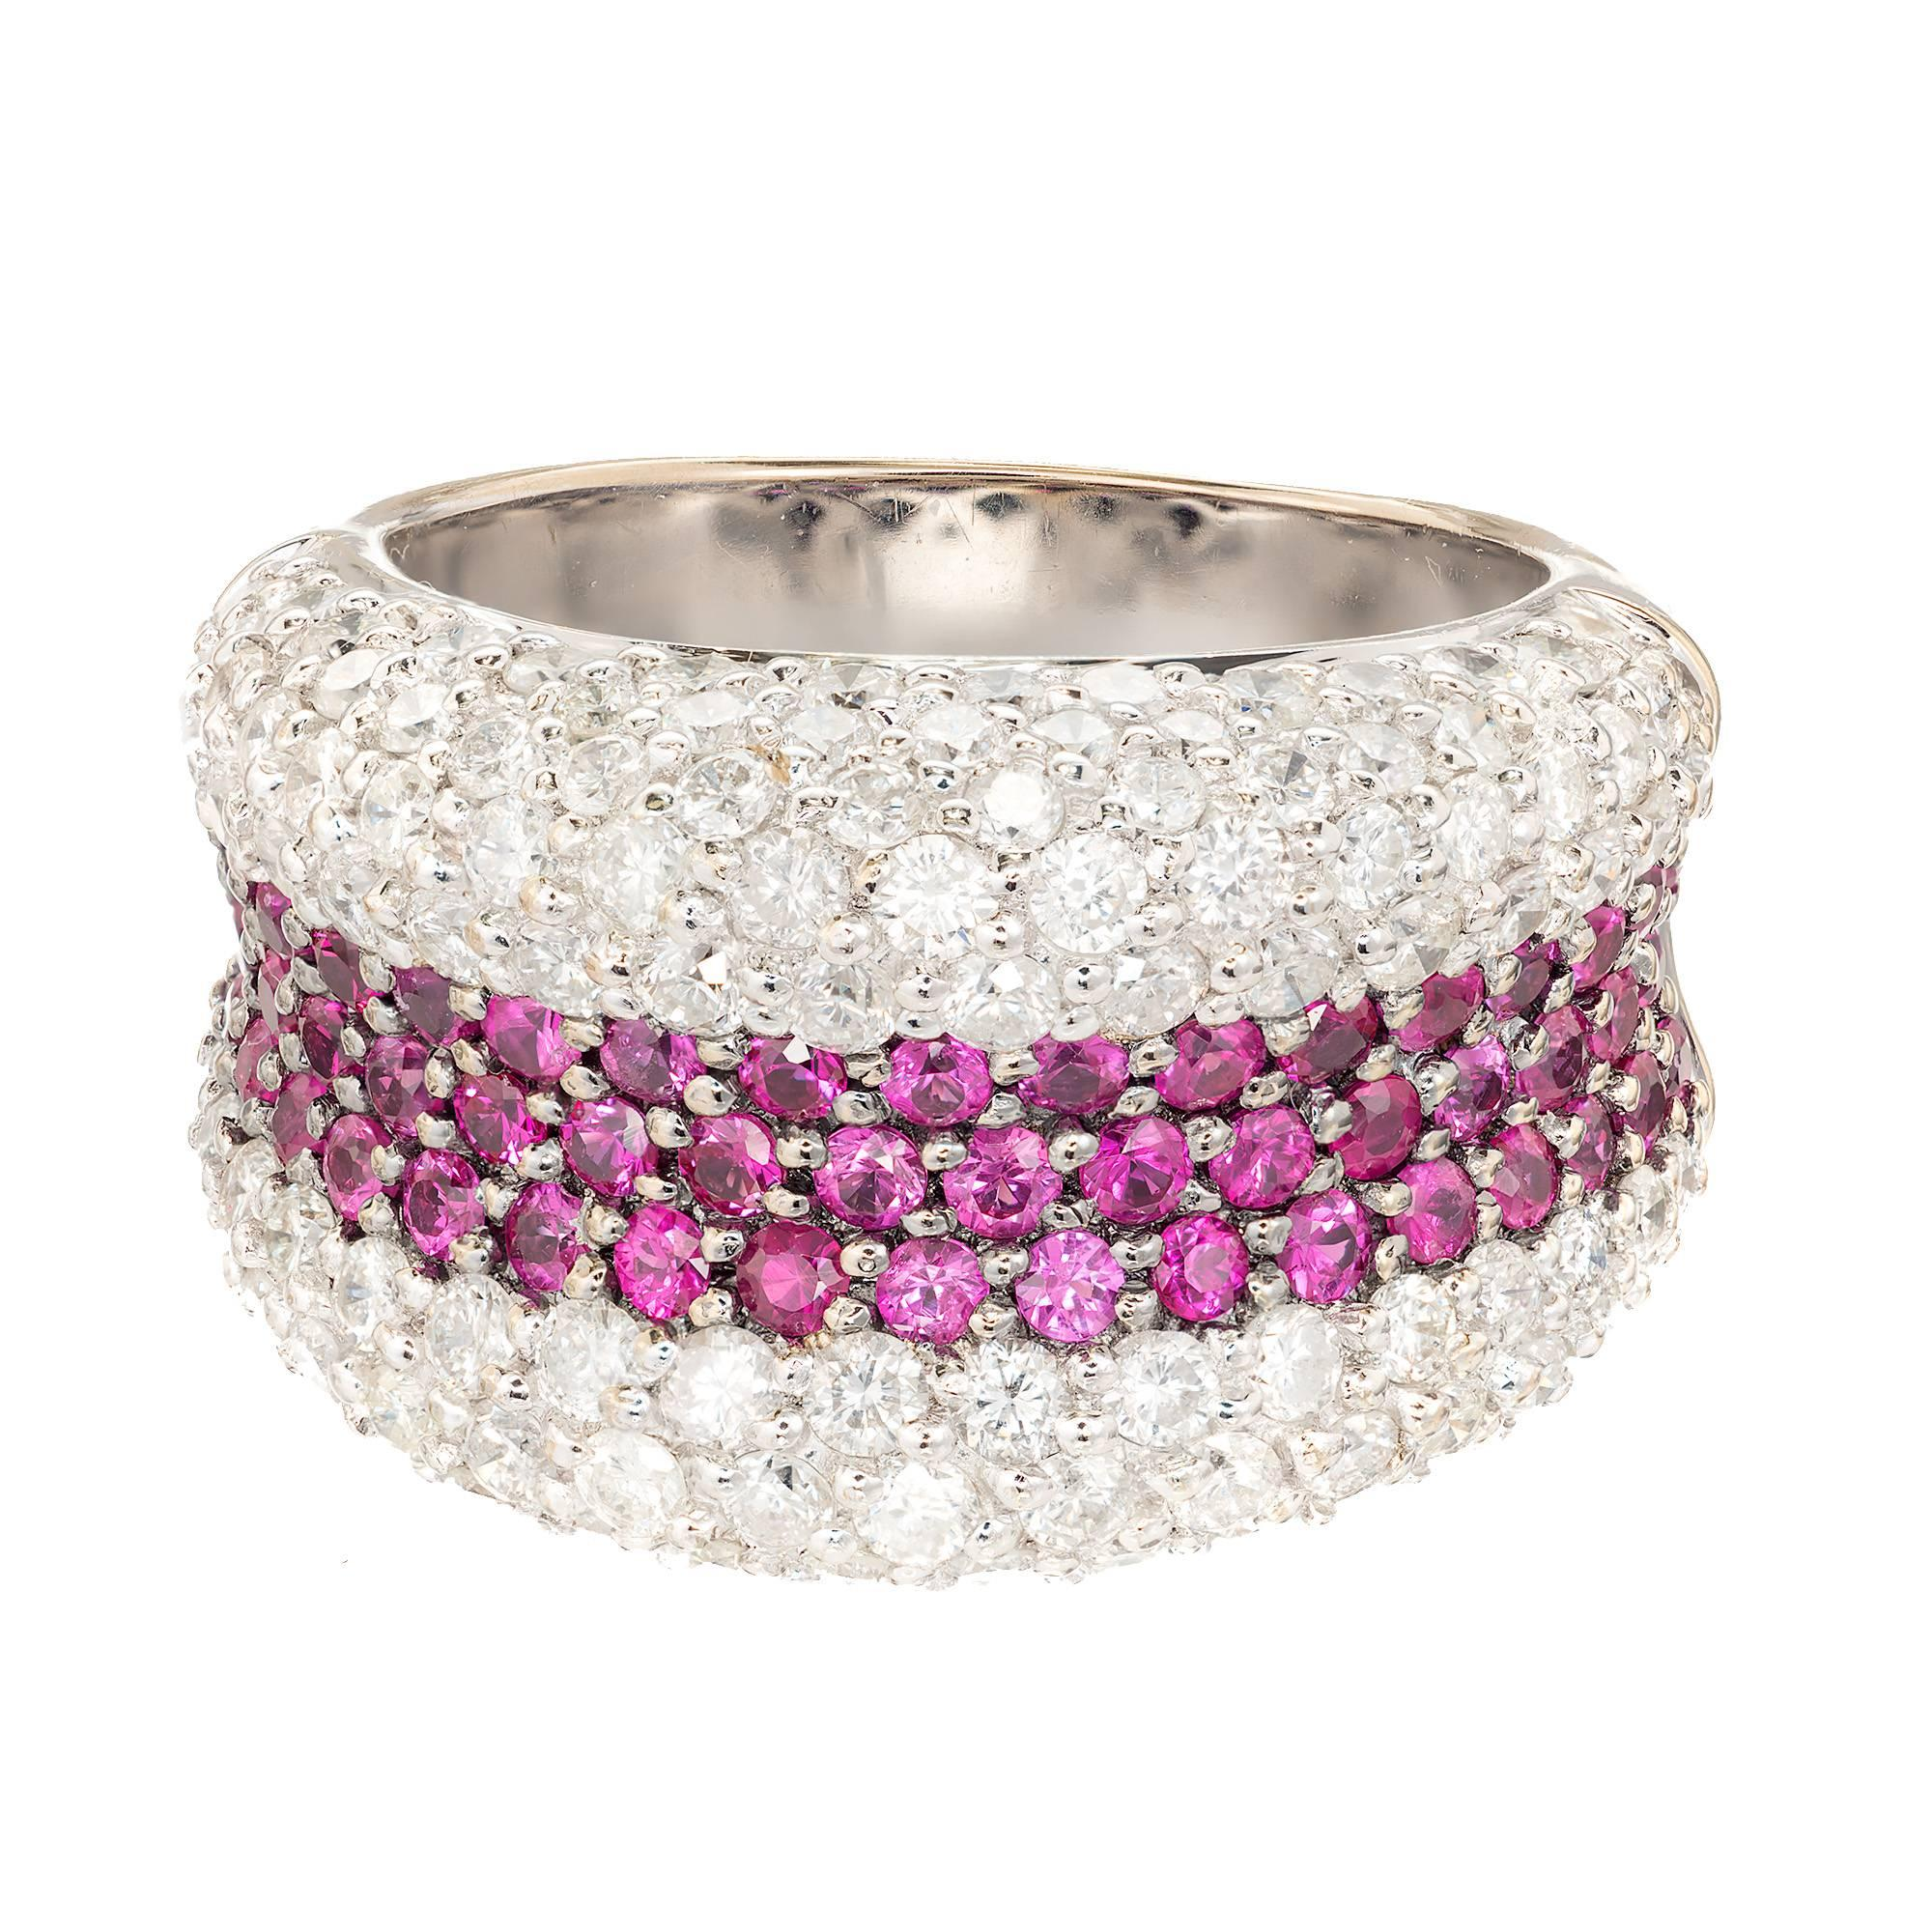 Sonia B Ruby Diamond Gold Dome Cocktail Band Ring